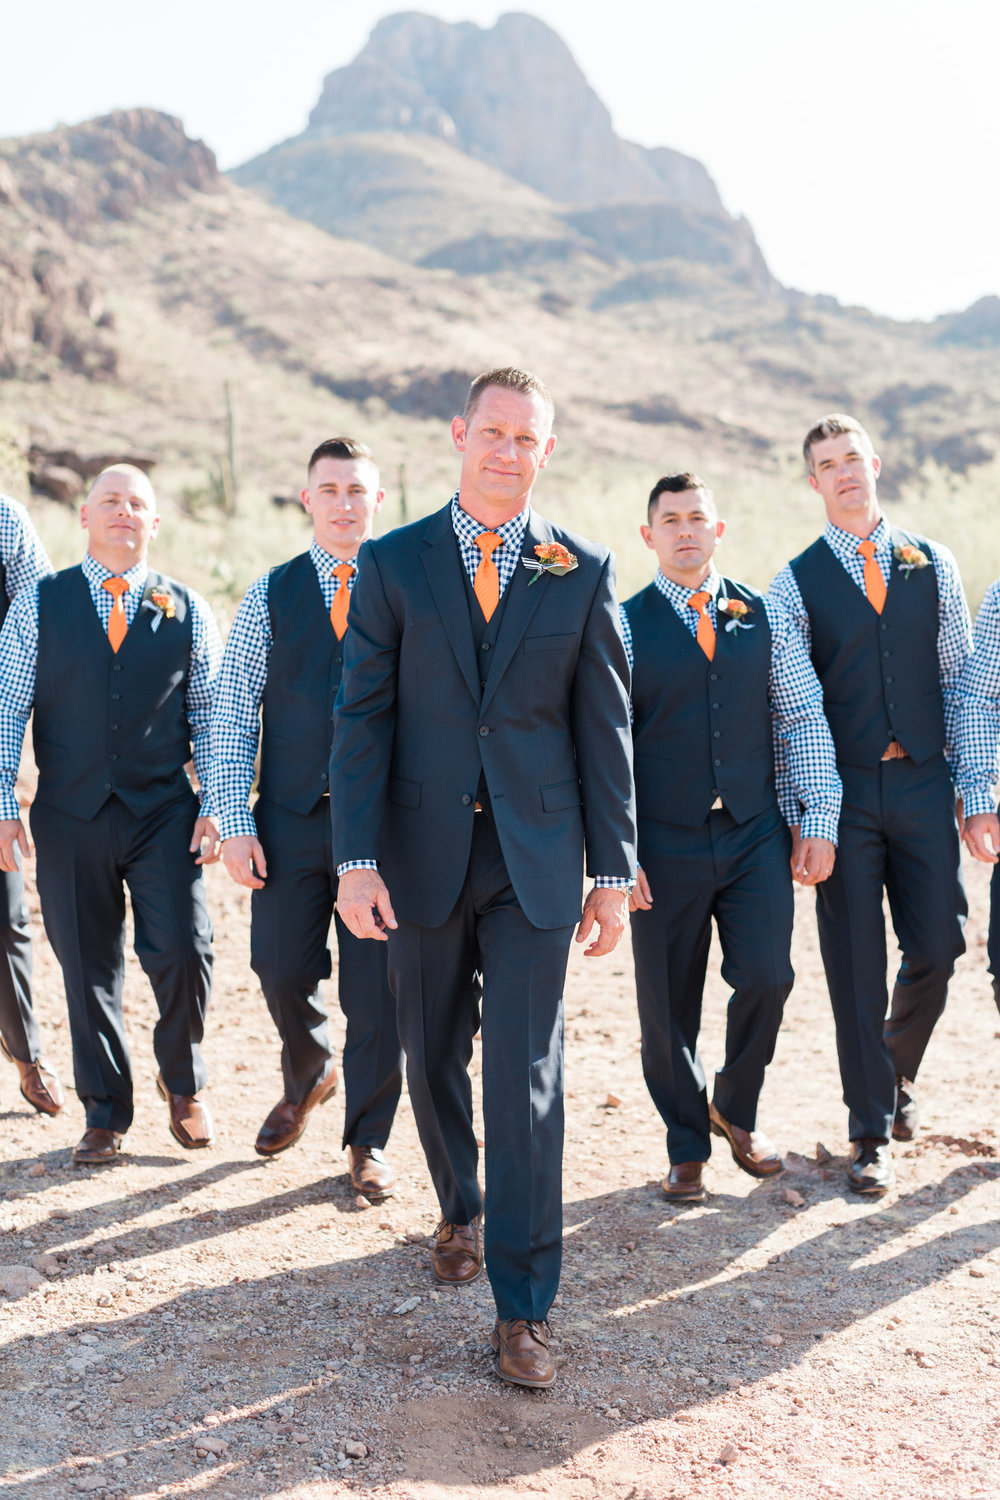 Handsome Groom and groomsmen in navy at Stardance Tucson, walking towards the camera.